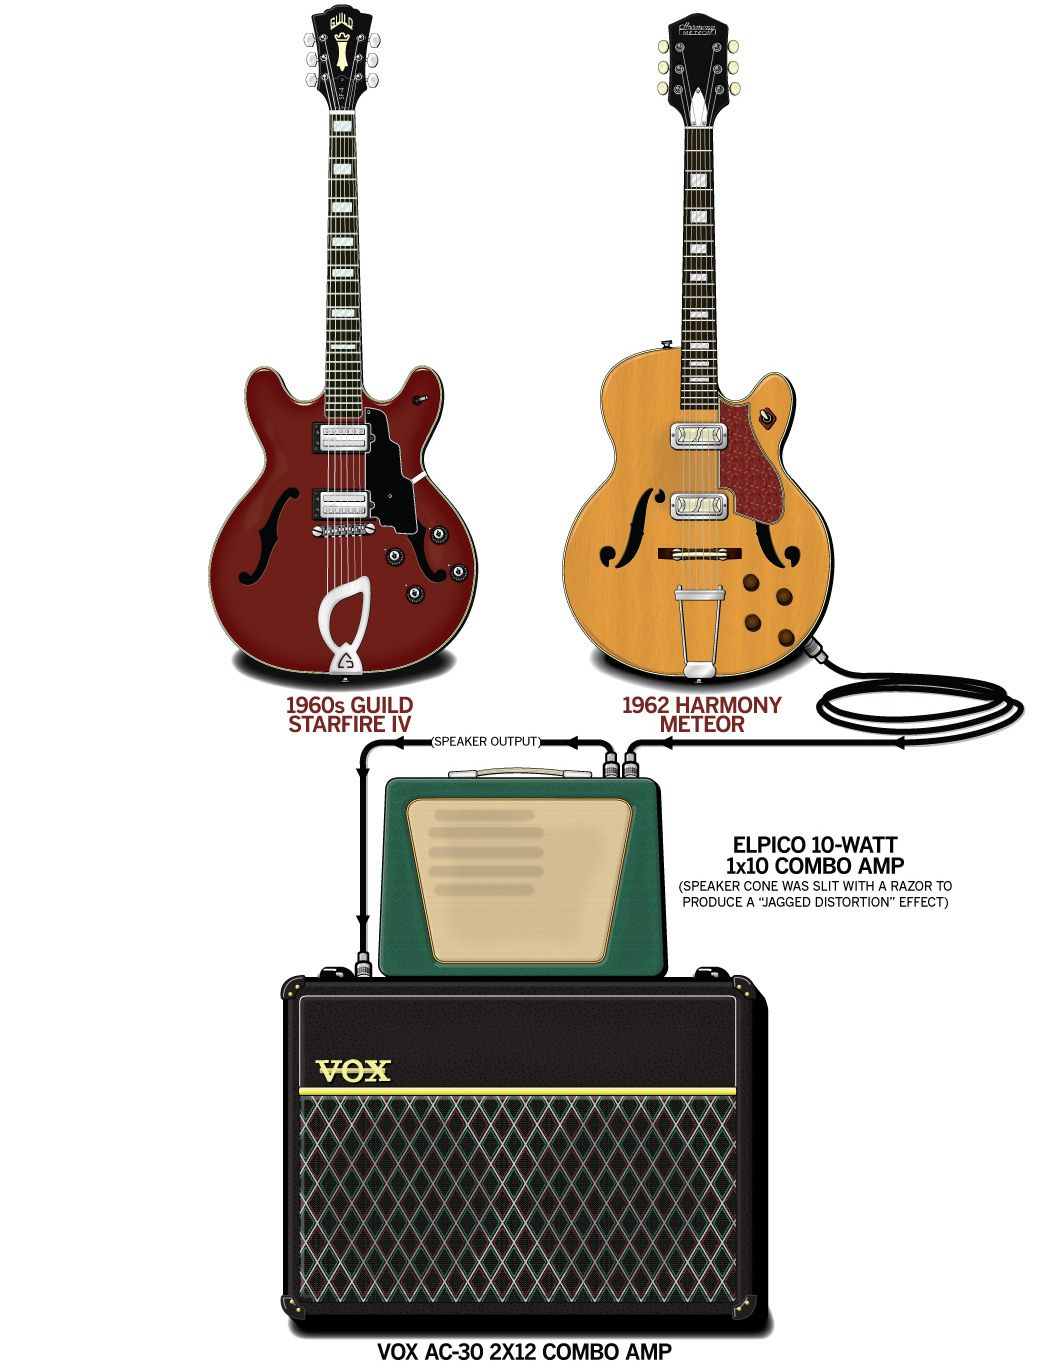 medium resolution of a detailed gear diagram of dave davies 1964 the kinks stage setup that traces the signal flow of the equipment in his guitar rig